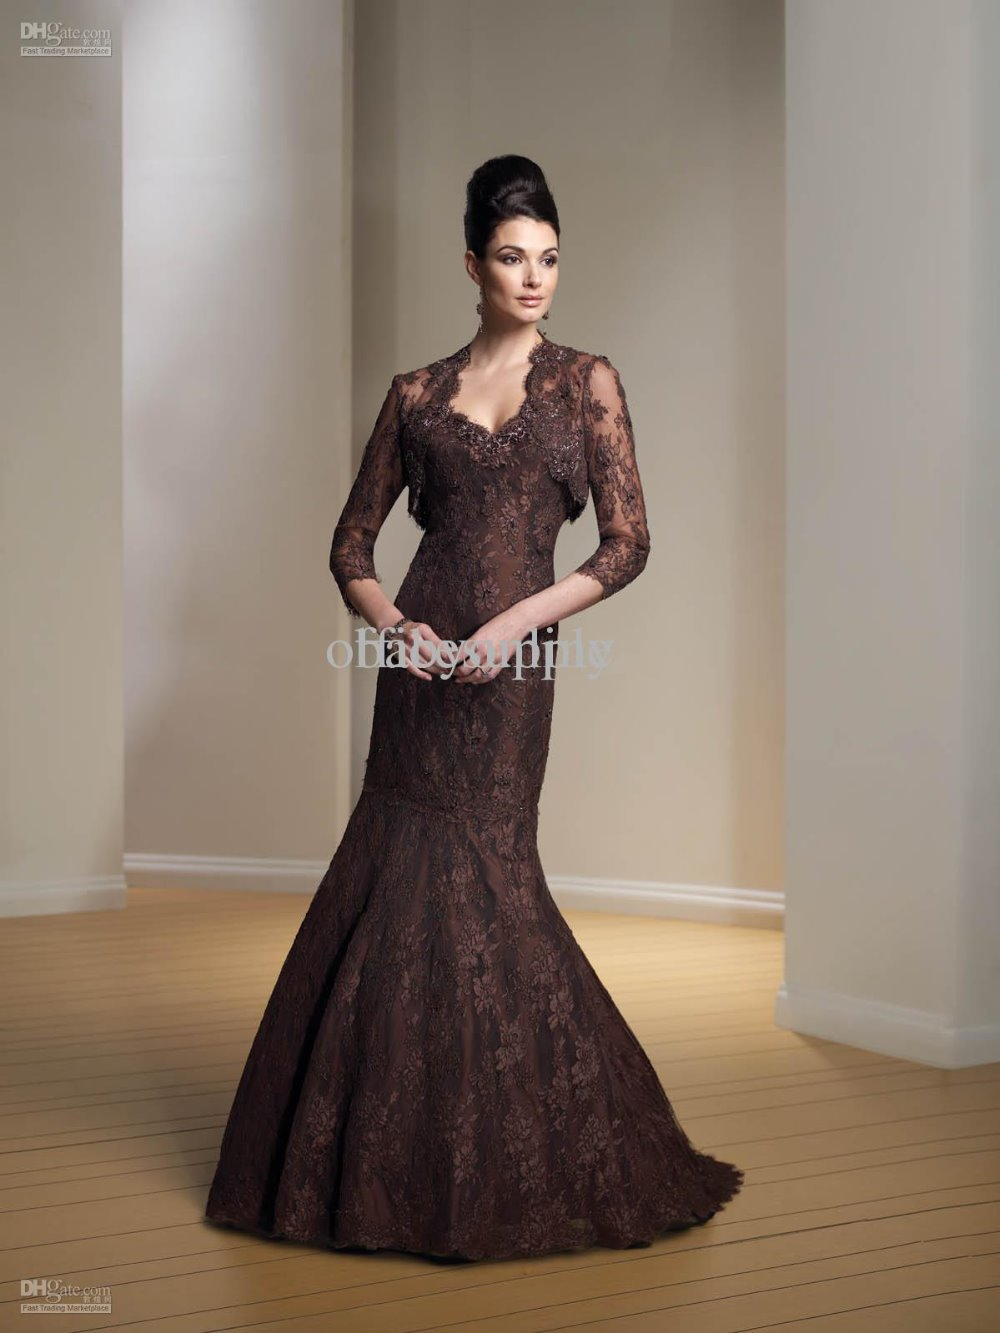 Chocolate Brown Cocktail Dresses | Dress images